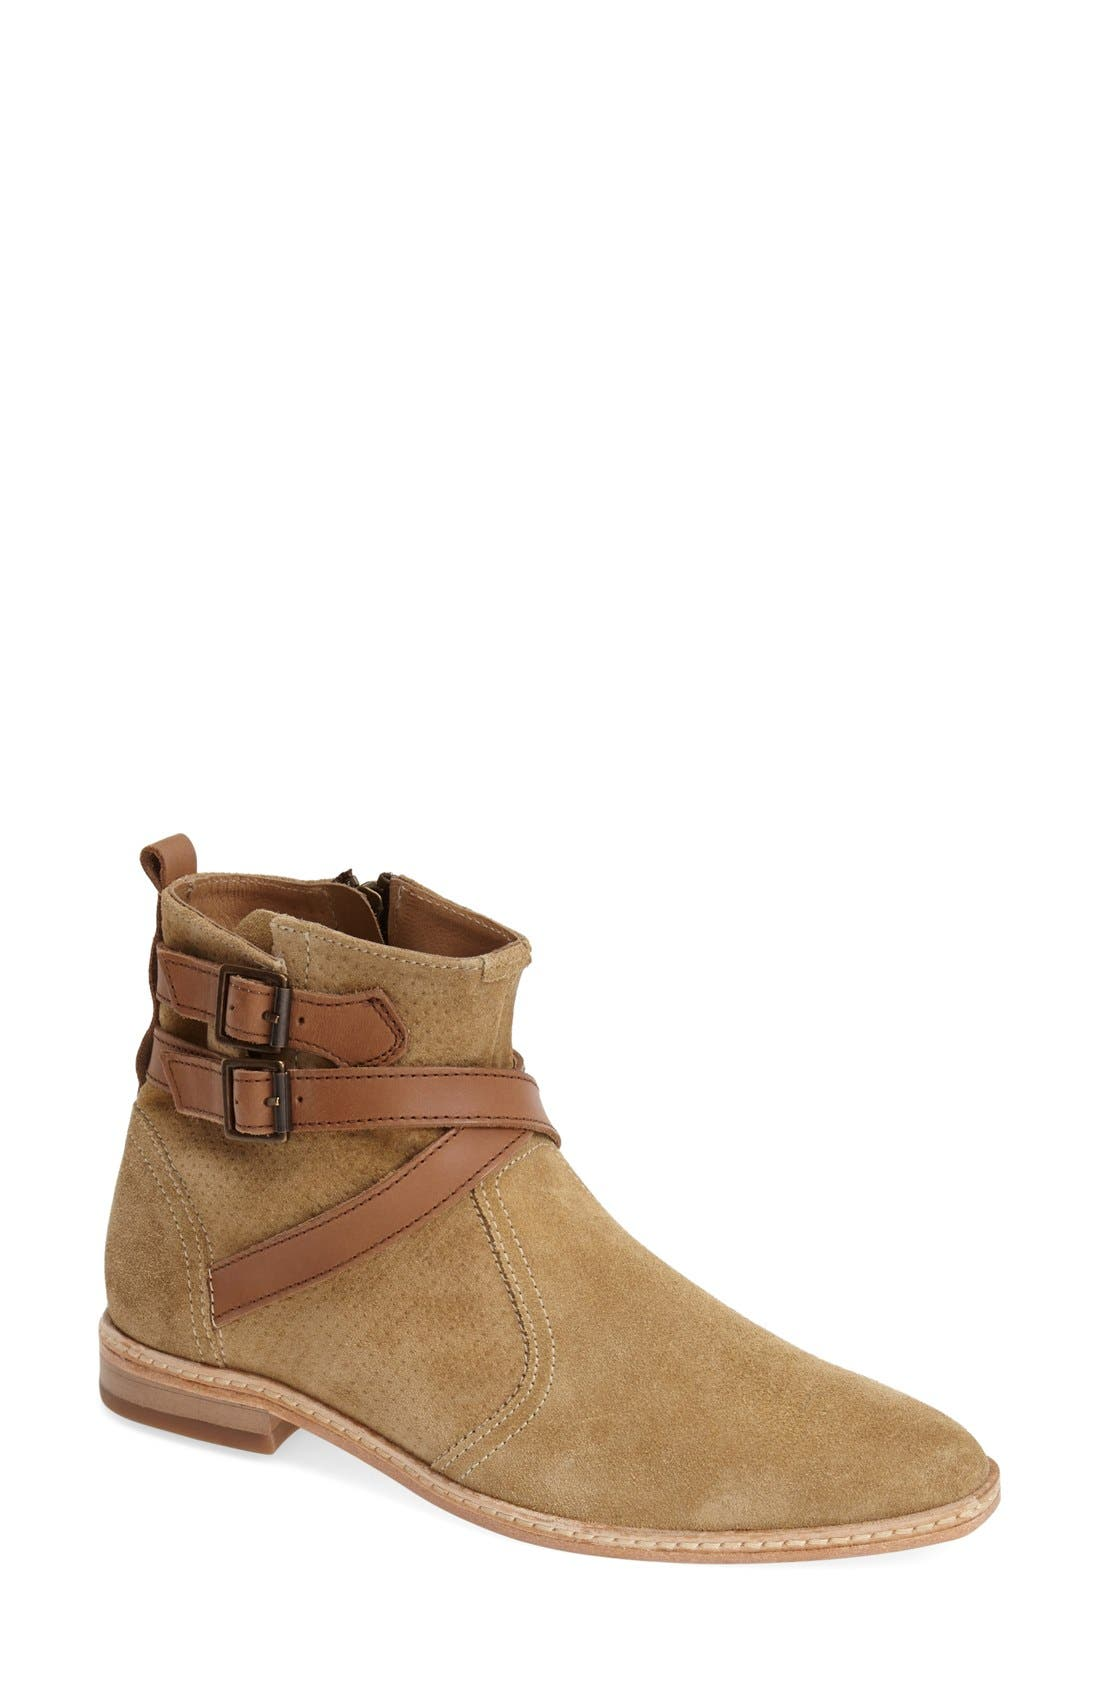 Main Image - H by Hudson 'Tab' Suede Chelsea Bootie (Women)